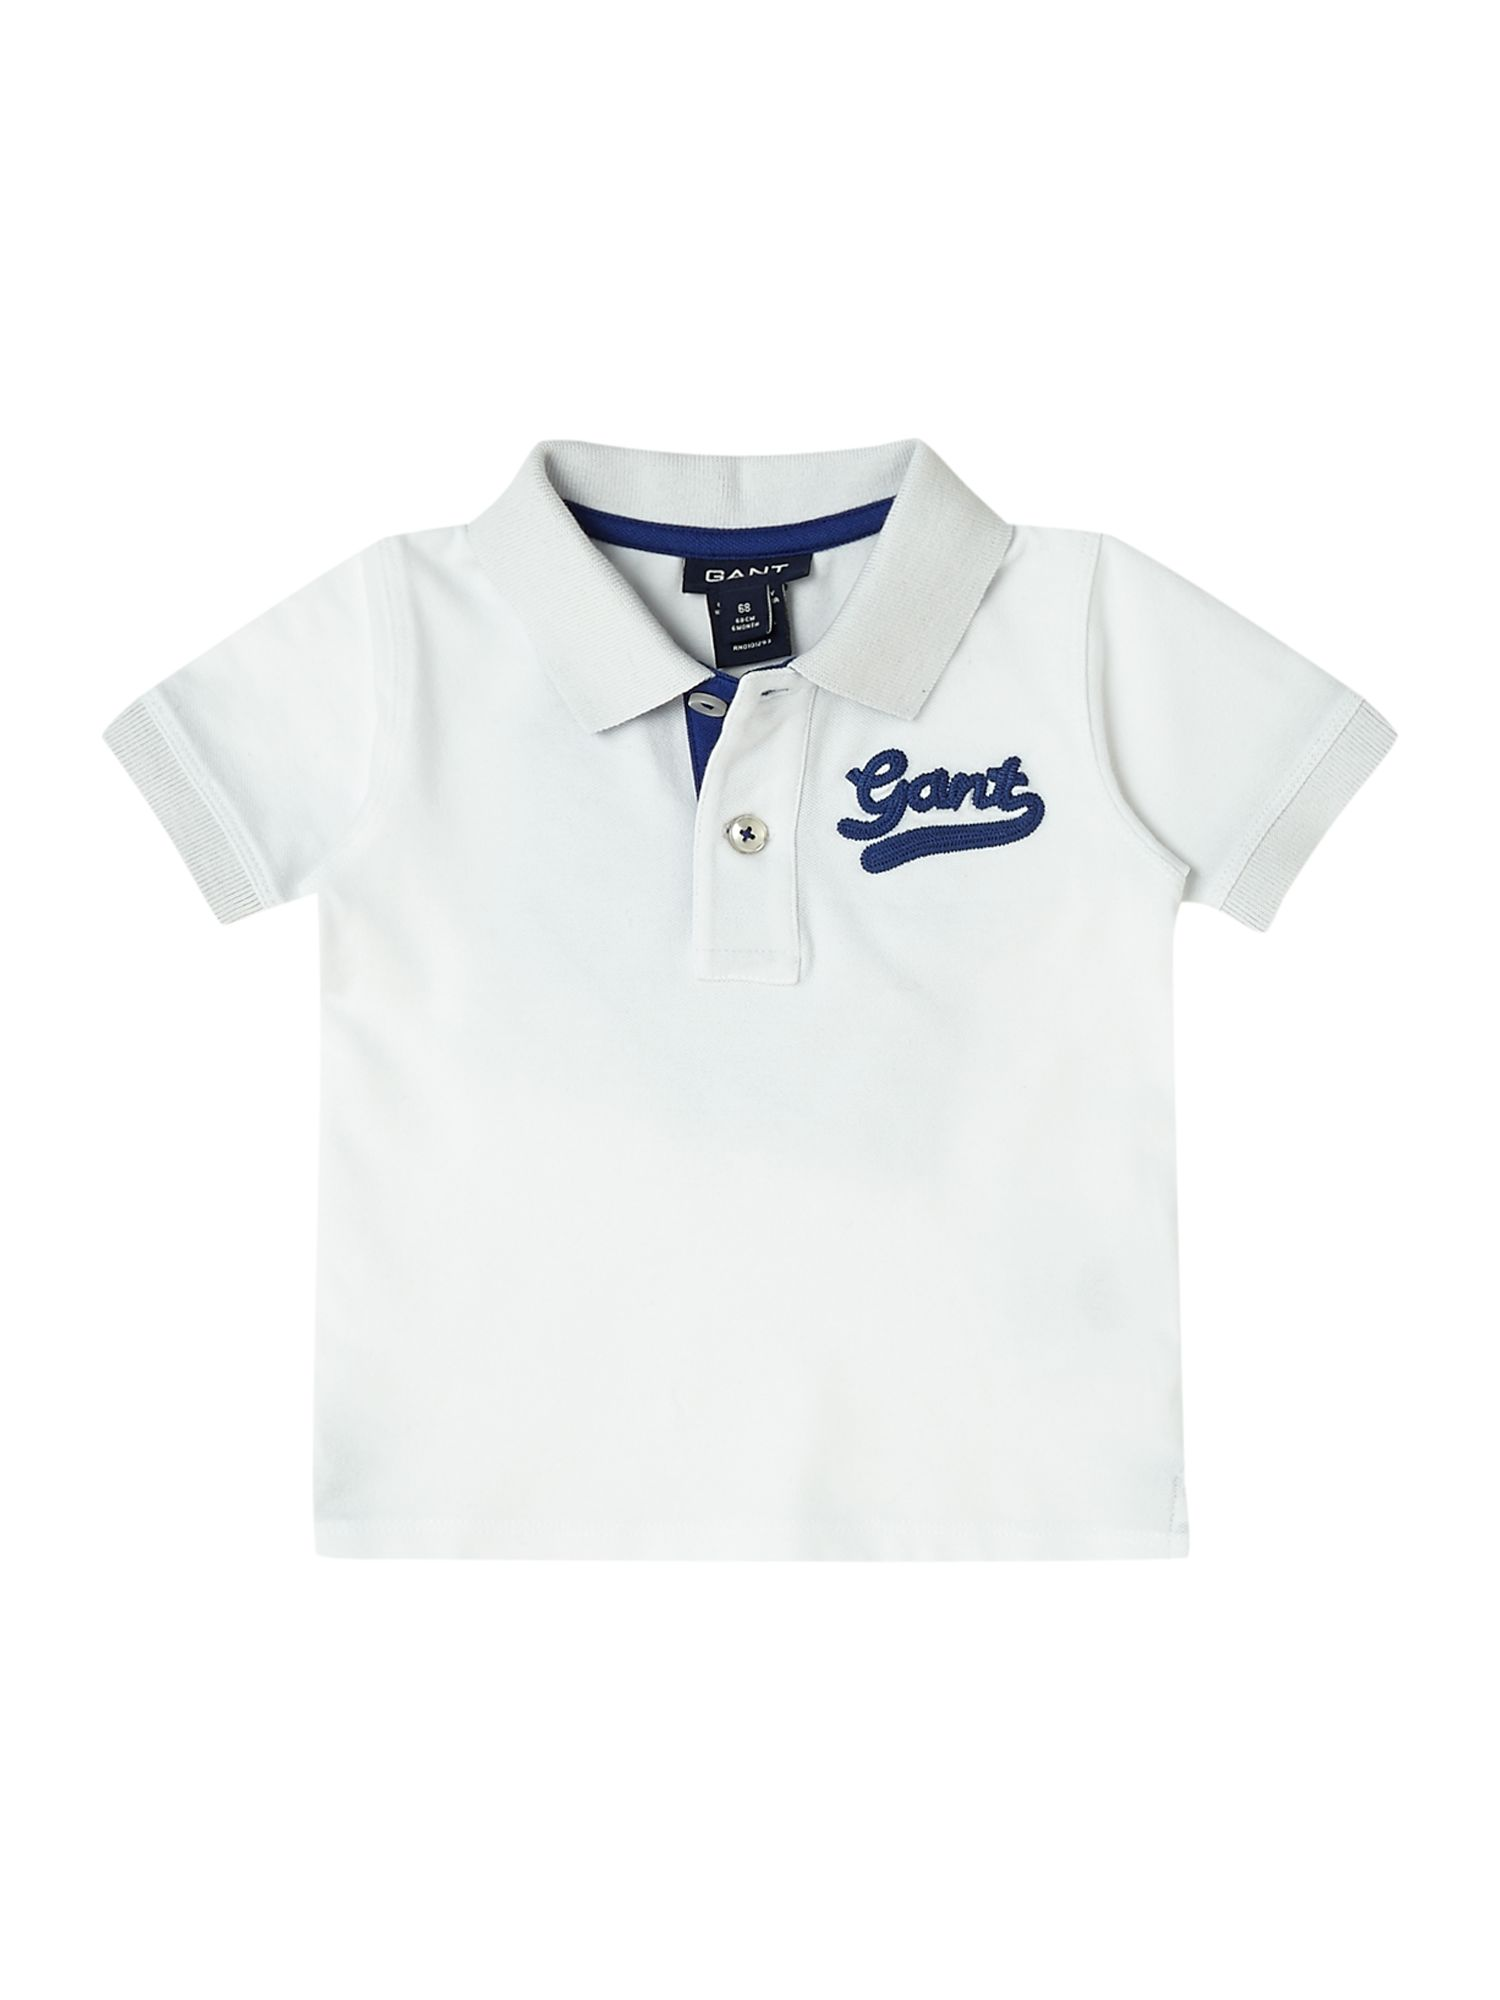 Boys contrast collar polo